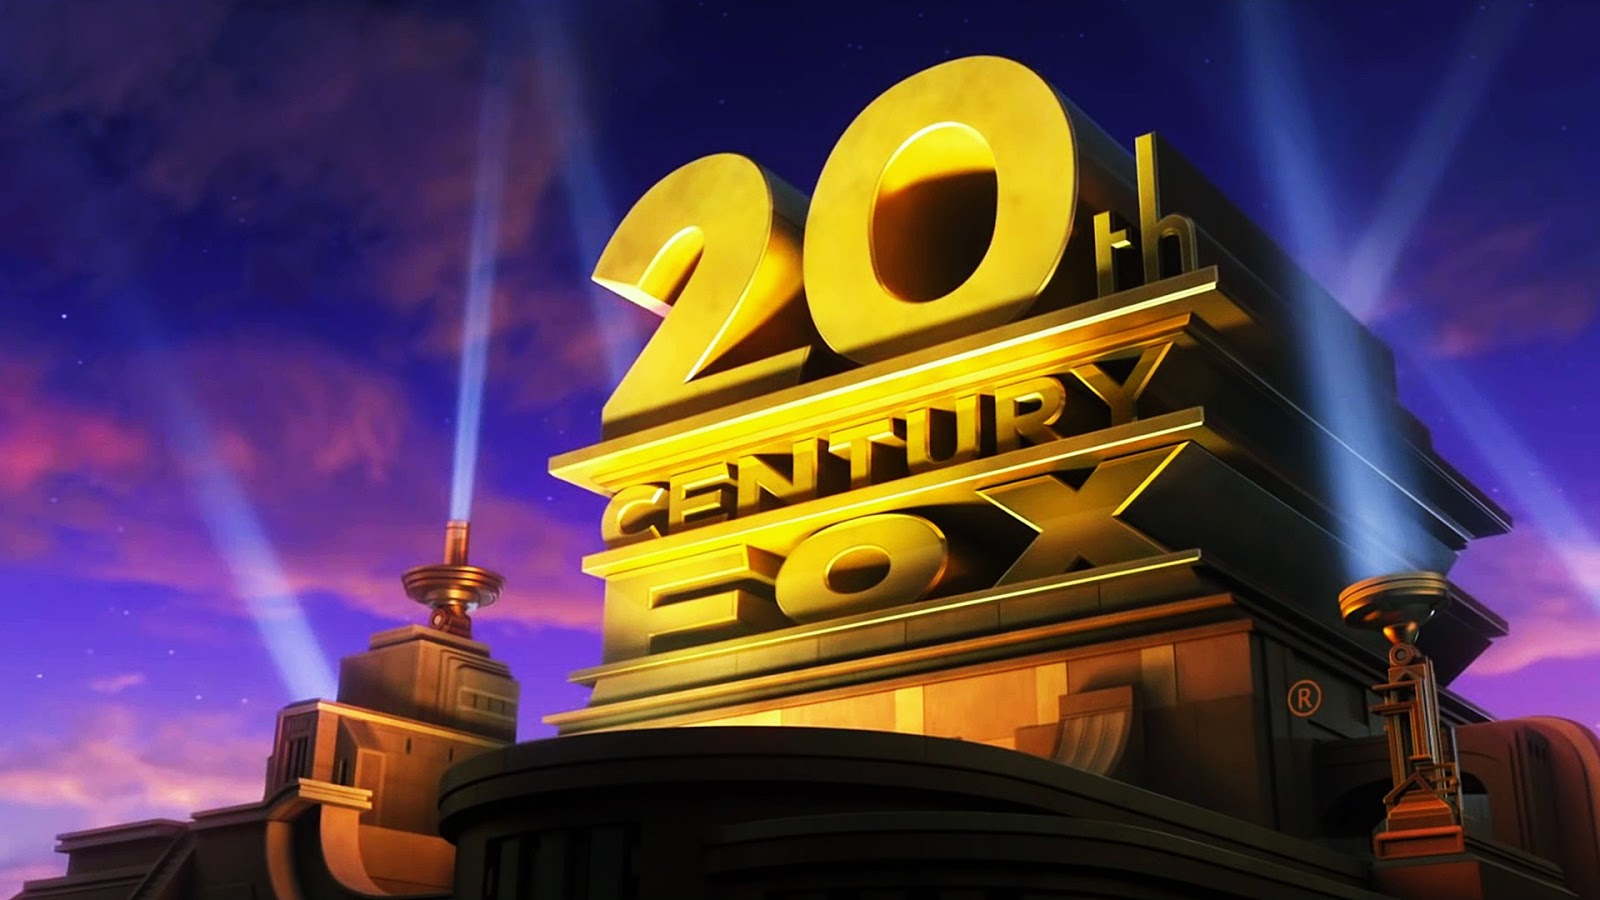 20th Century Fox Wallpapers HD Backgrounds, Image, Pics, Photos HD